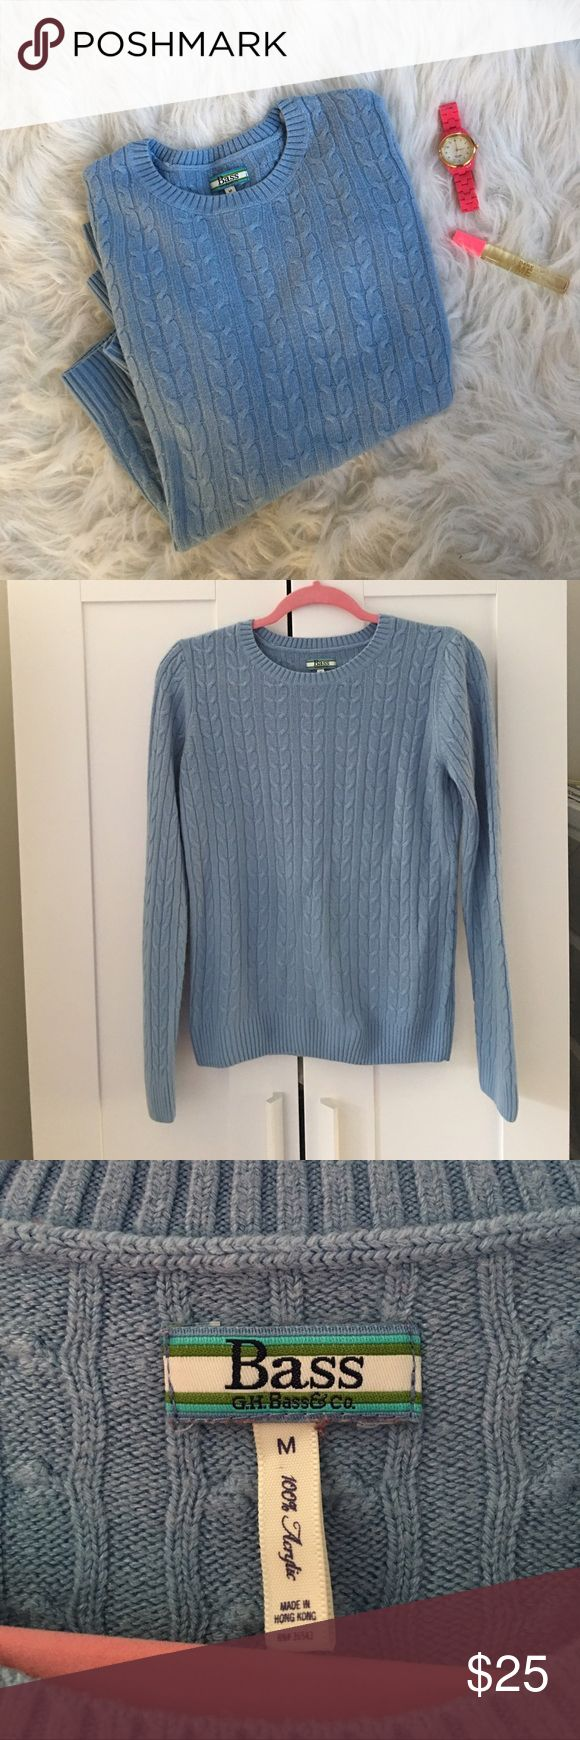 GH Bass & Co. Cable Knit Sweater Cable knit crewneck sweater in a pretty blue by GH Bass & Co. Ribbed sleeve cuffs & hem. 100% acrylic. Size Medium. EUC. Bass Sweaters Crew & Scoop Necks